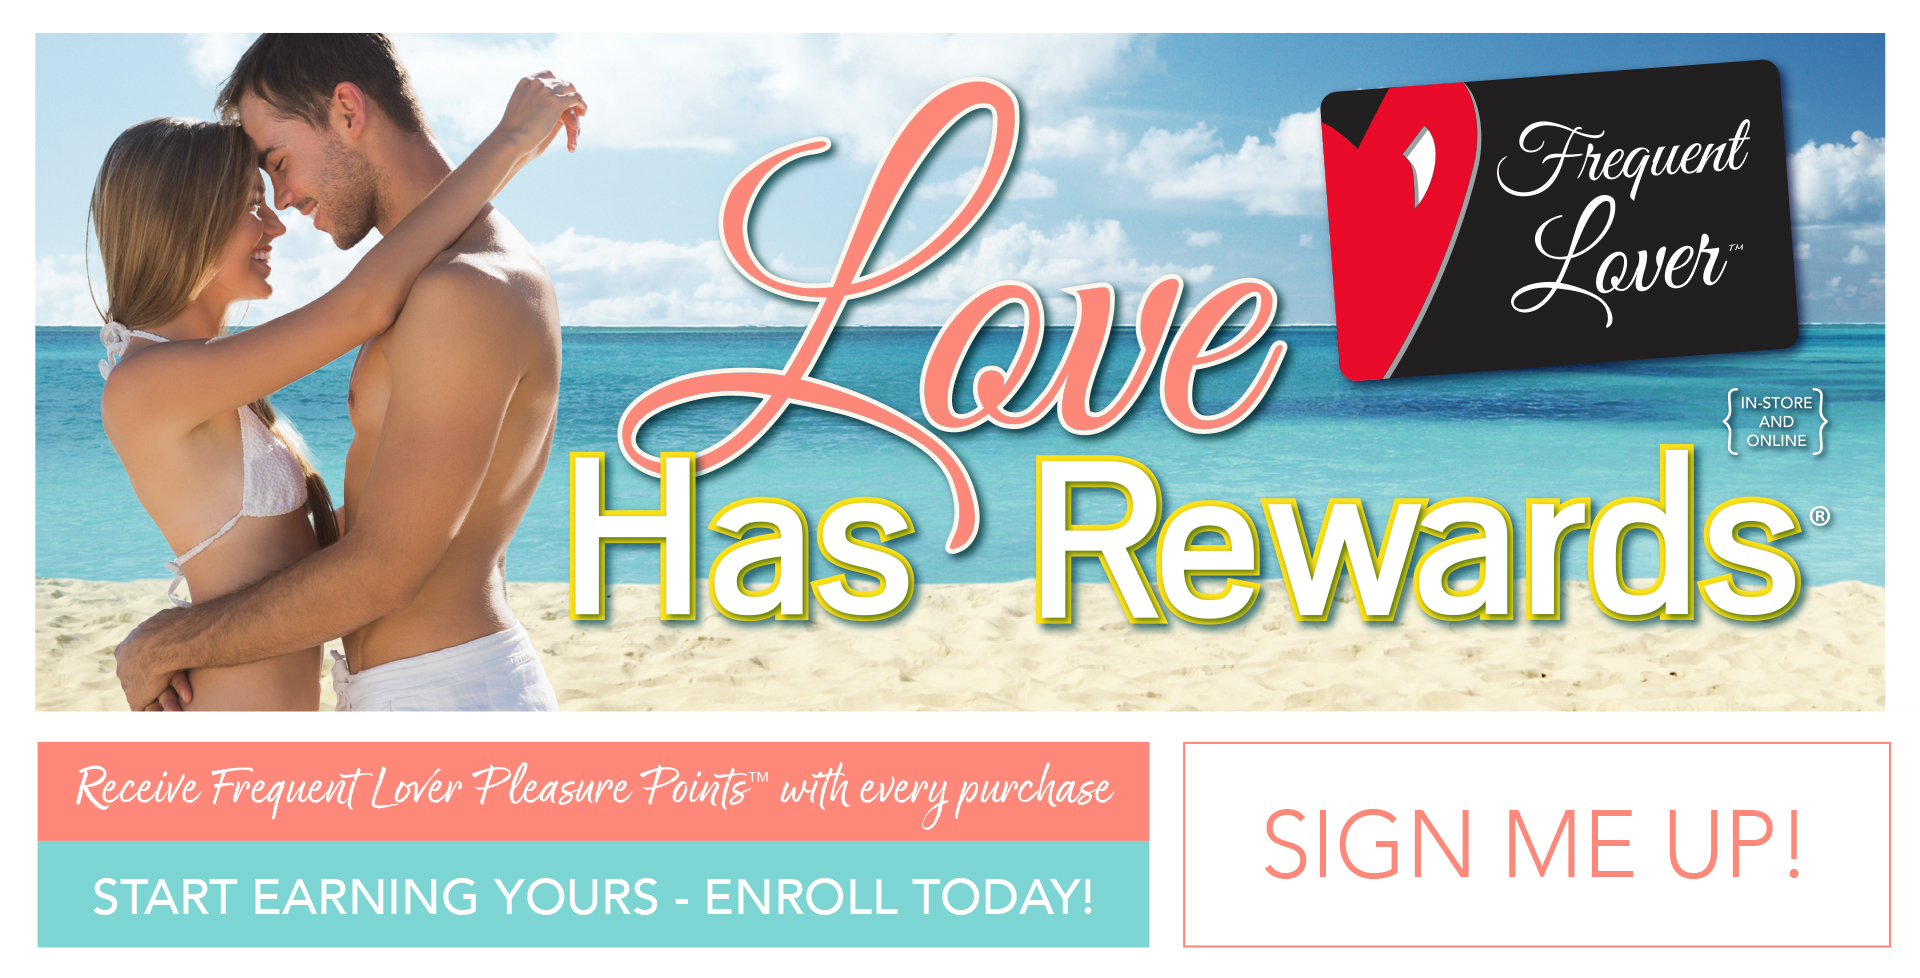 Love Has Rewards - Enroll in the frequent Lover Loyalty Program today! Sign Me Up! - In-Store & Online